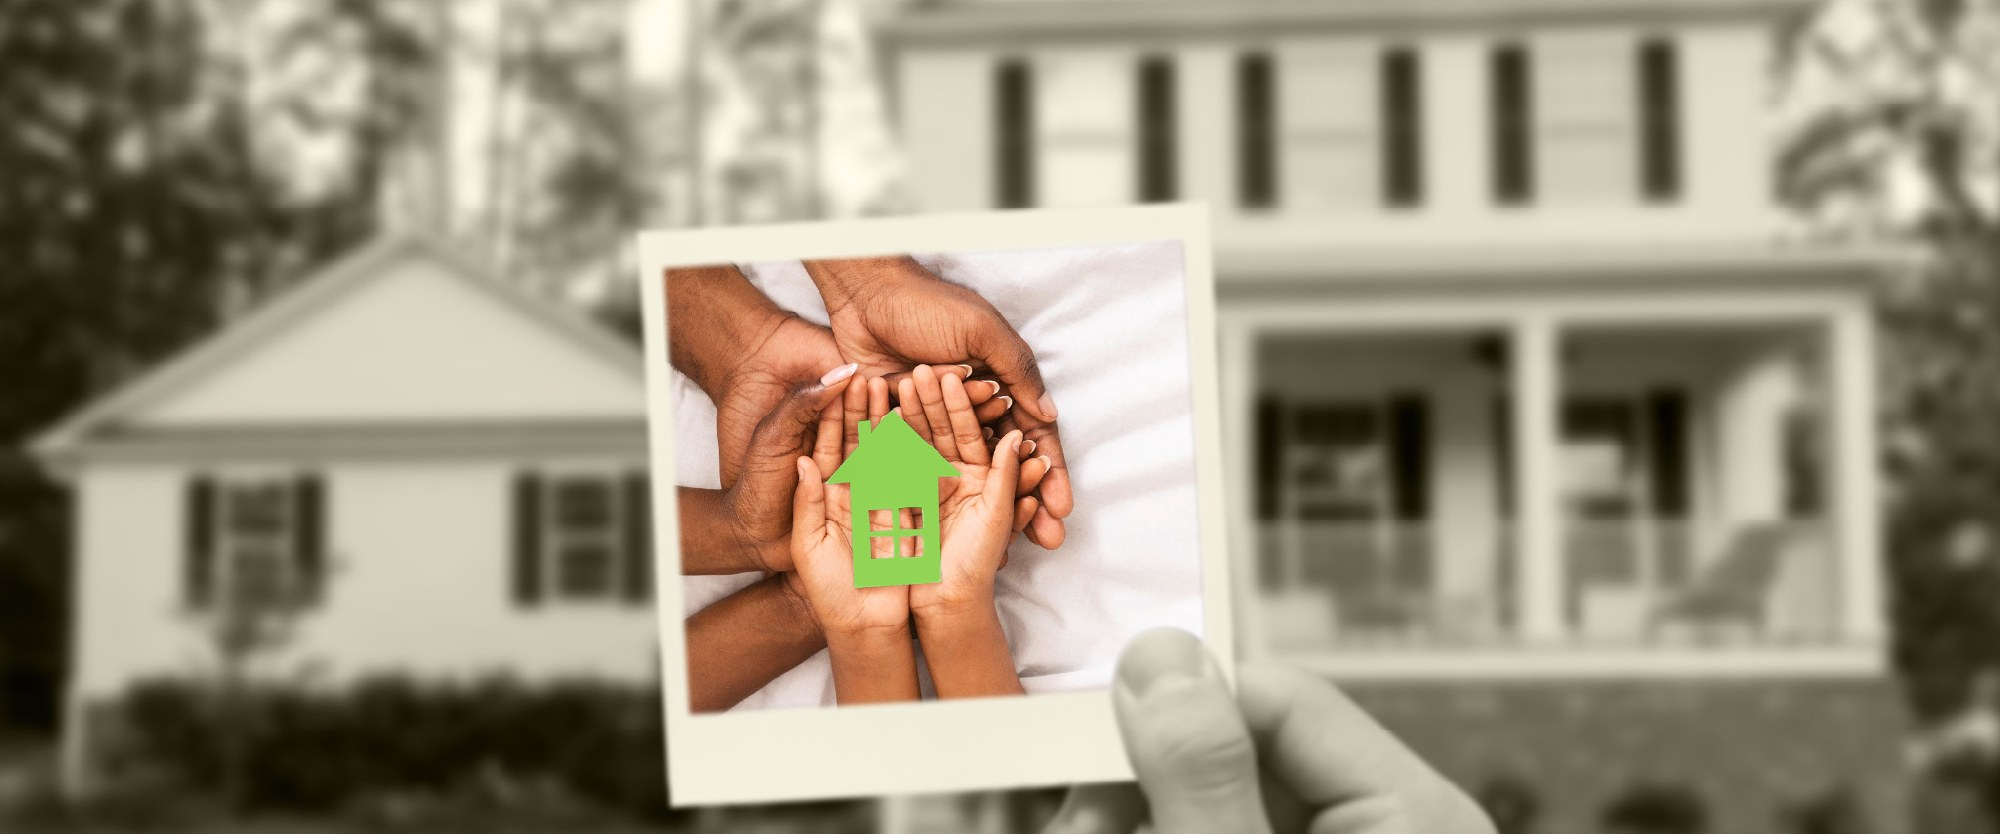 polaroid of two adults and child's hand holding a green cutout of a home in their palms against the backdrop of a house